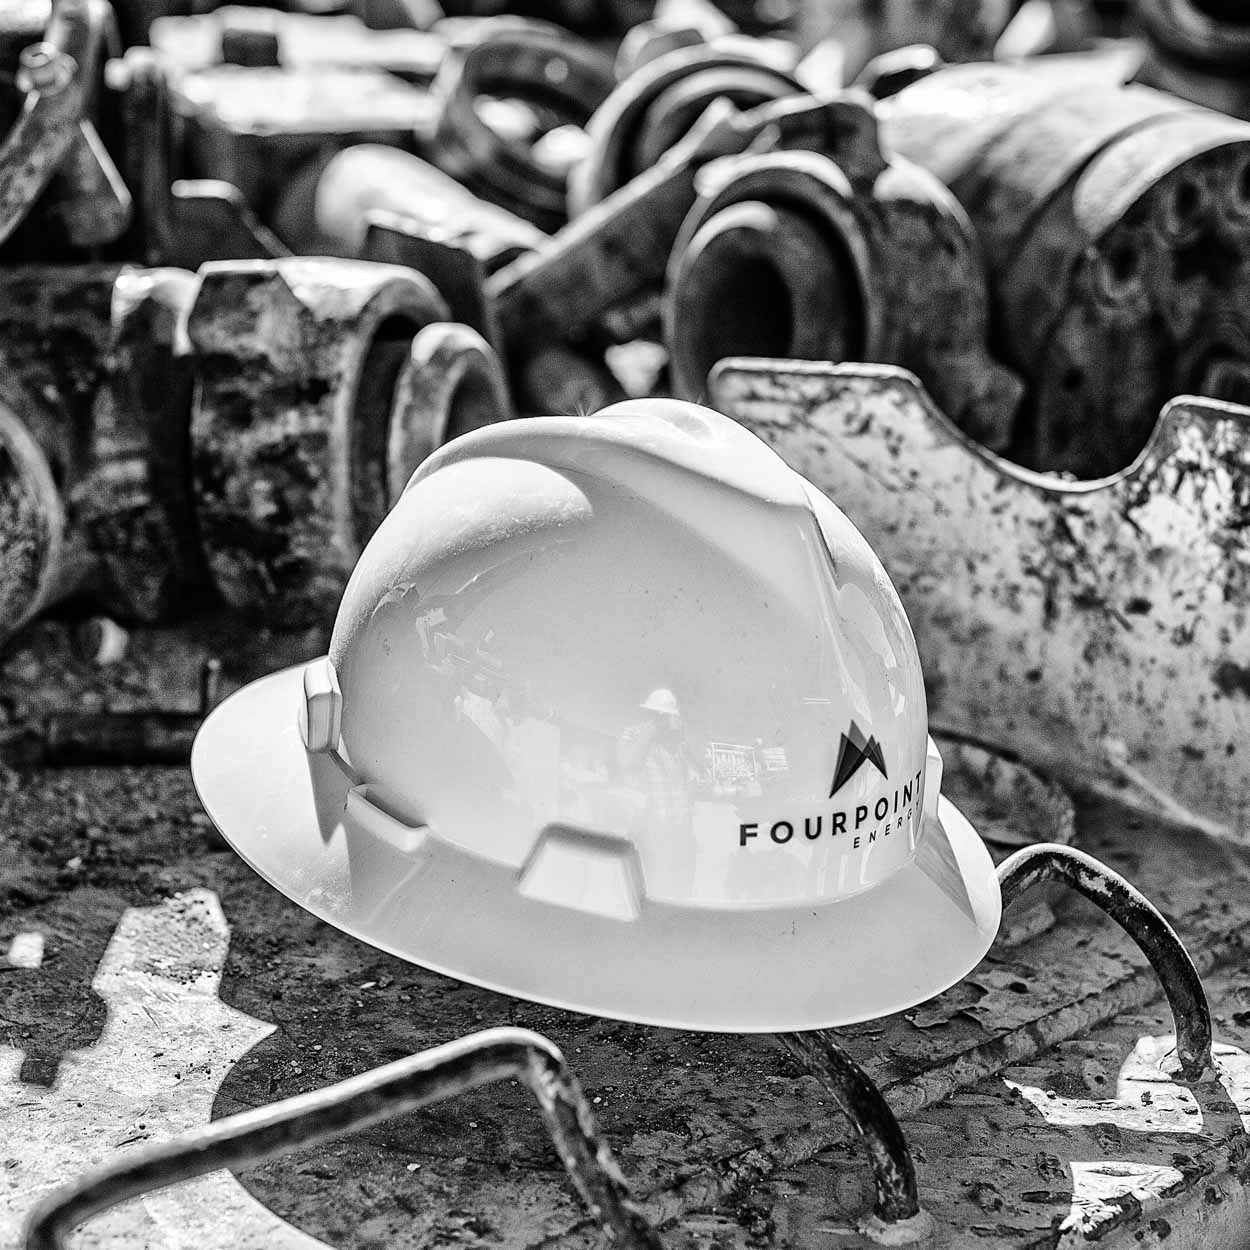 Black and white photograph of a branded hardhat sitting on top of dirty pipe fittings.